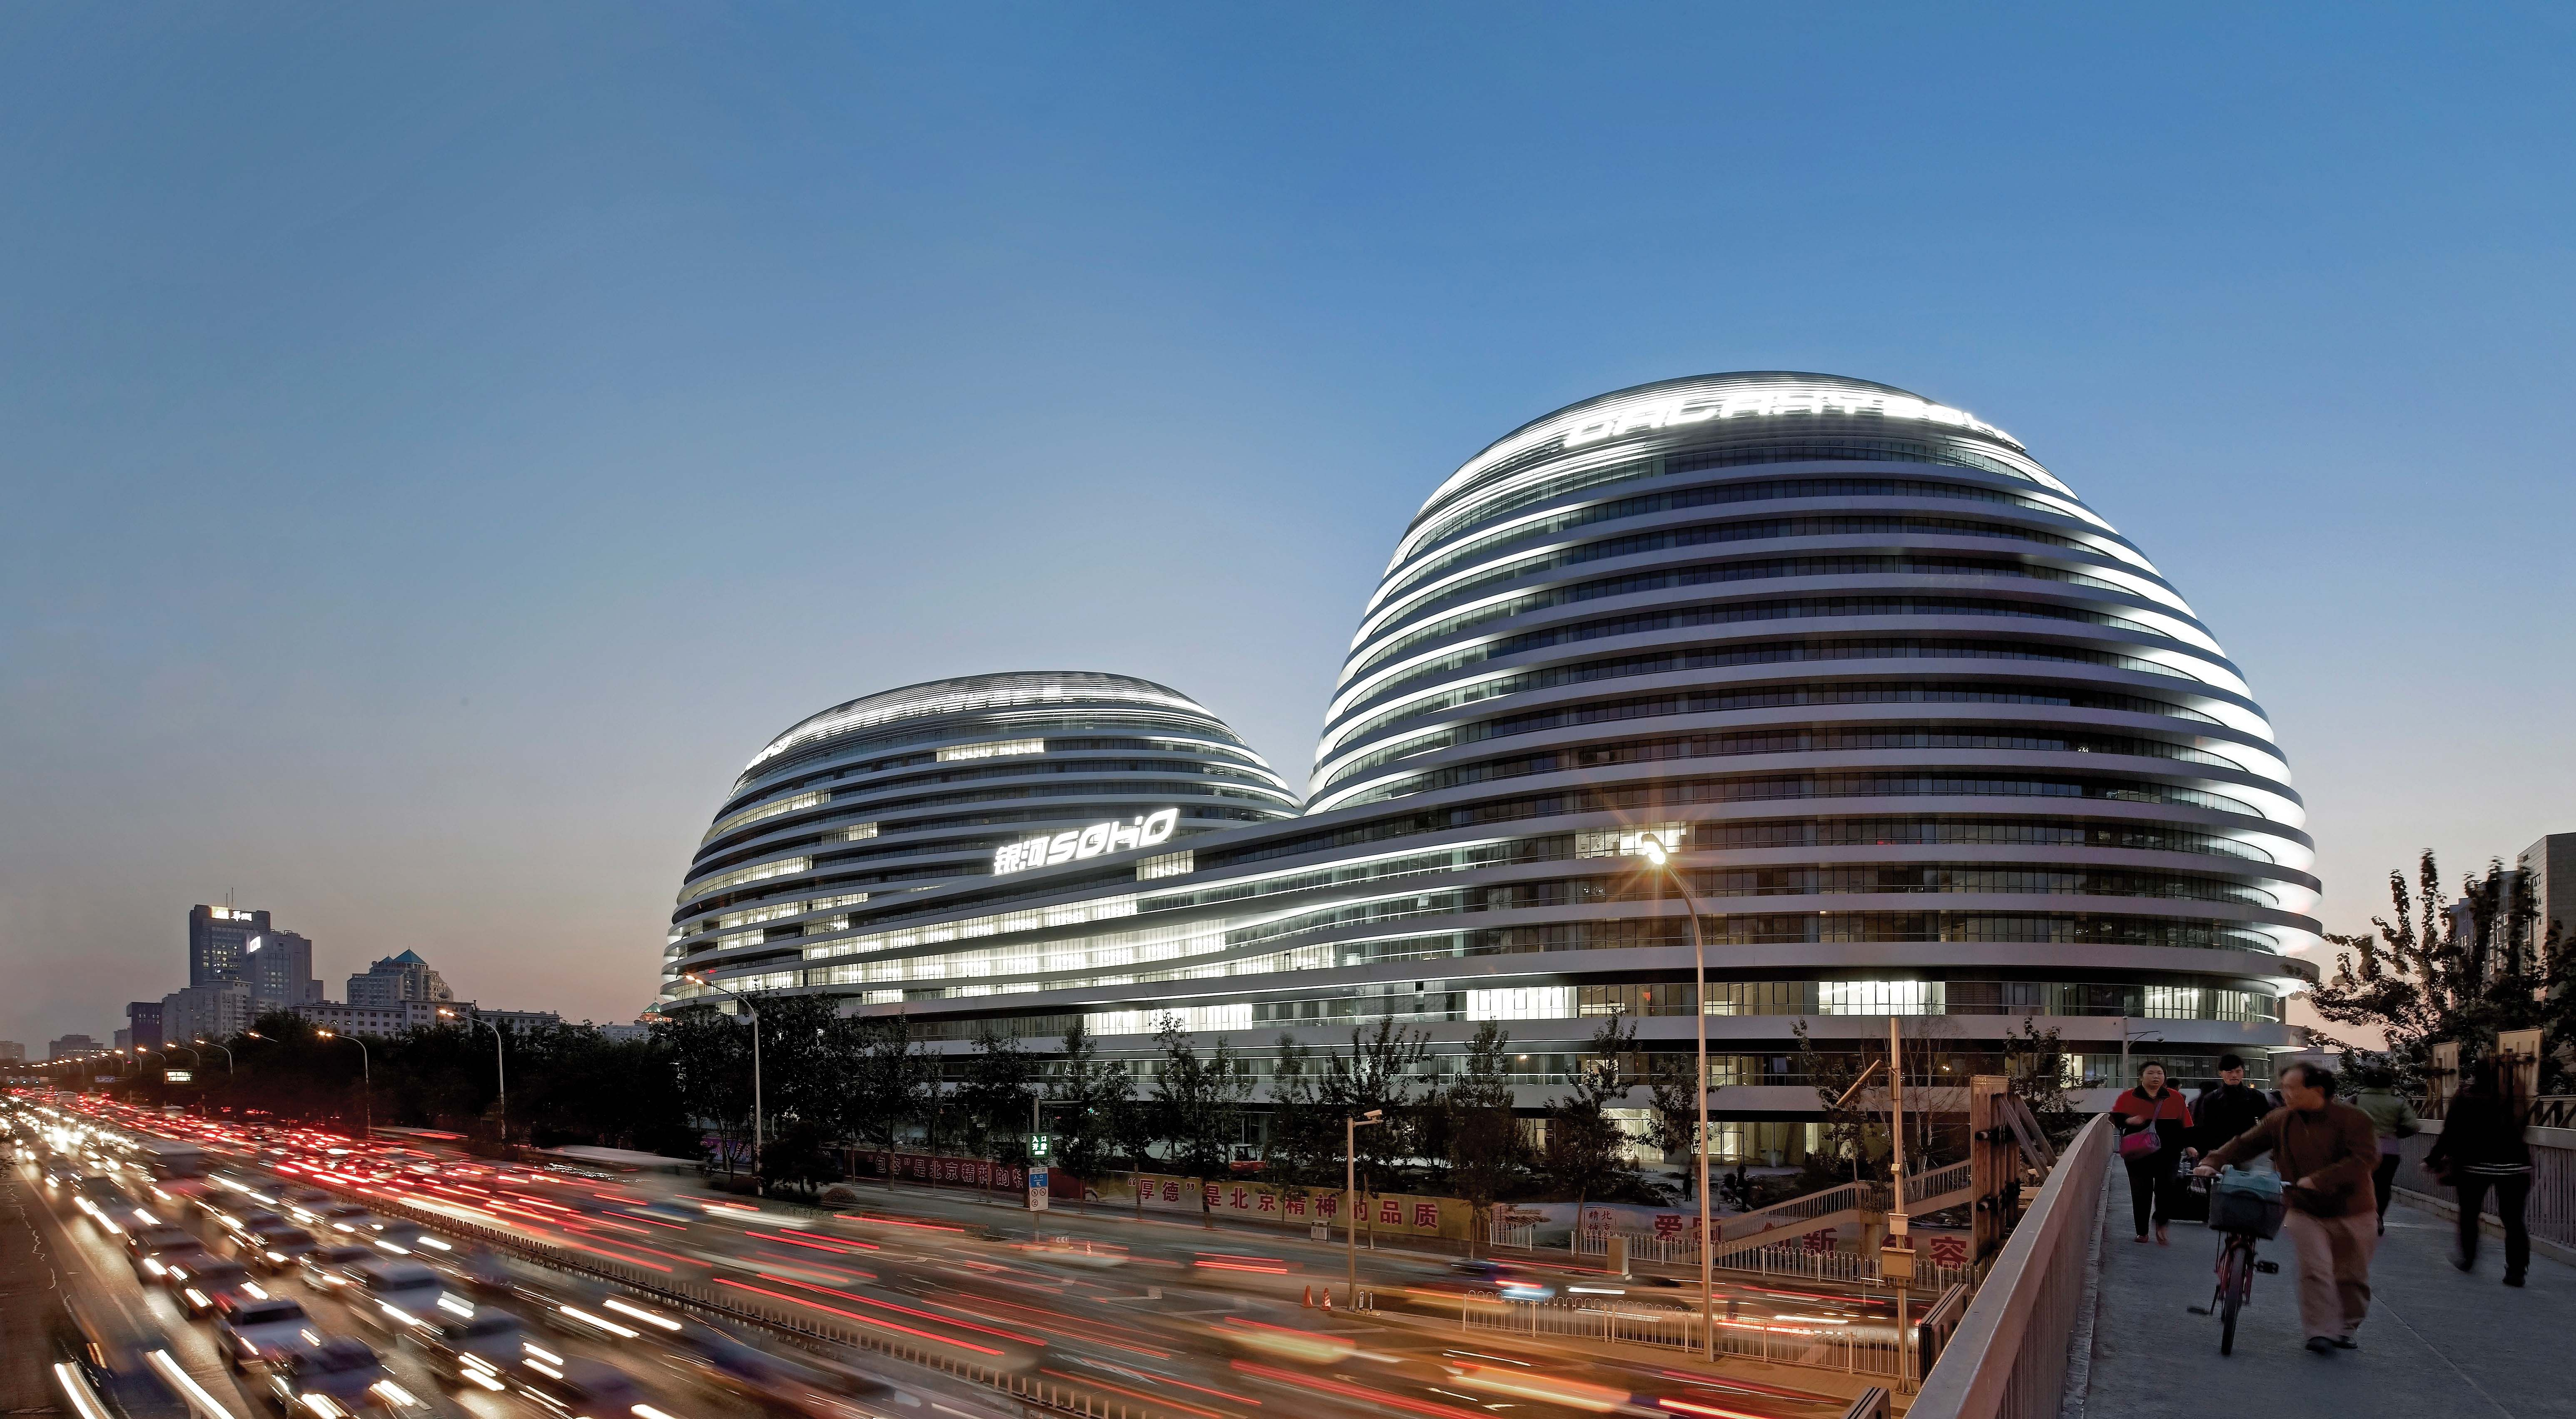 Designed by Zaha Hadid Architects, the Galaxy SOHO project in Beijing for SOHO China is a 330,000m2 office, retail and entertainment complex that will become an integral part of the living city. Its architecture is a composition of four continuous, flowing volumes that are set apart, fused or linked by stretched bridges. Photo: Hufton + Crow.